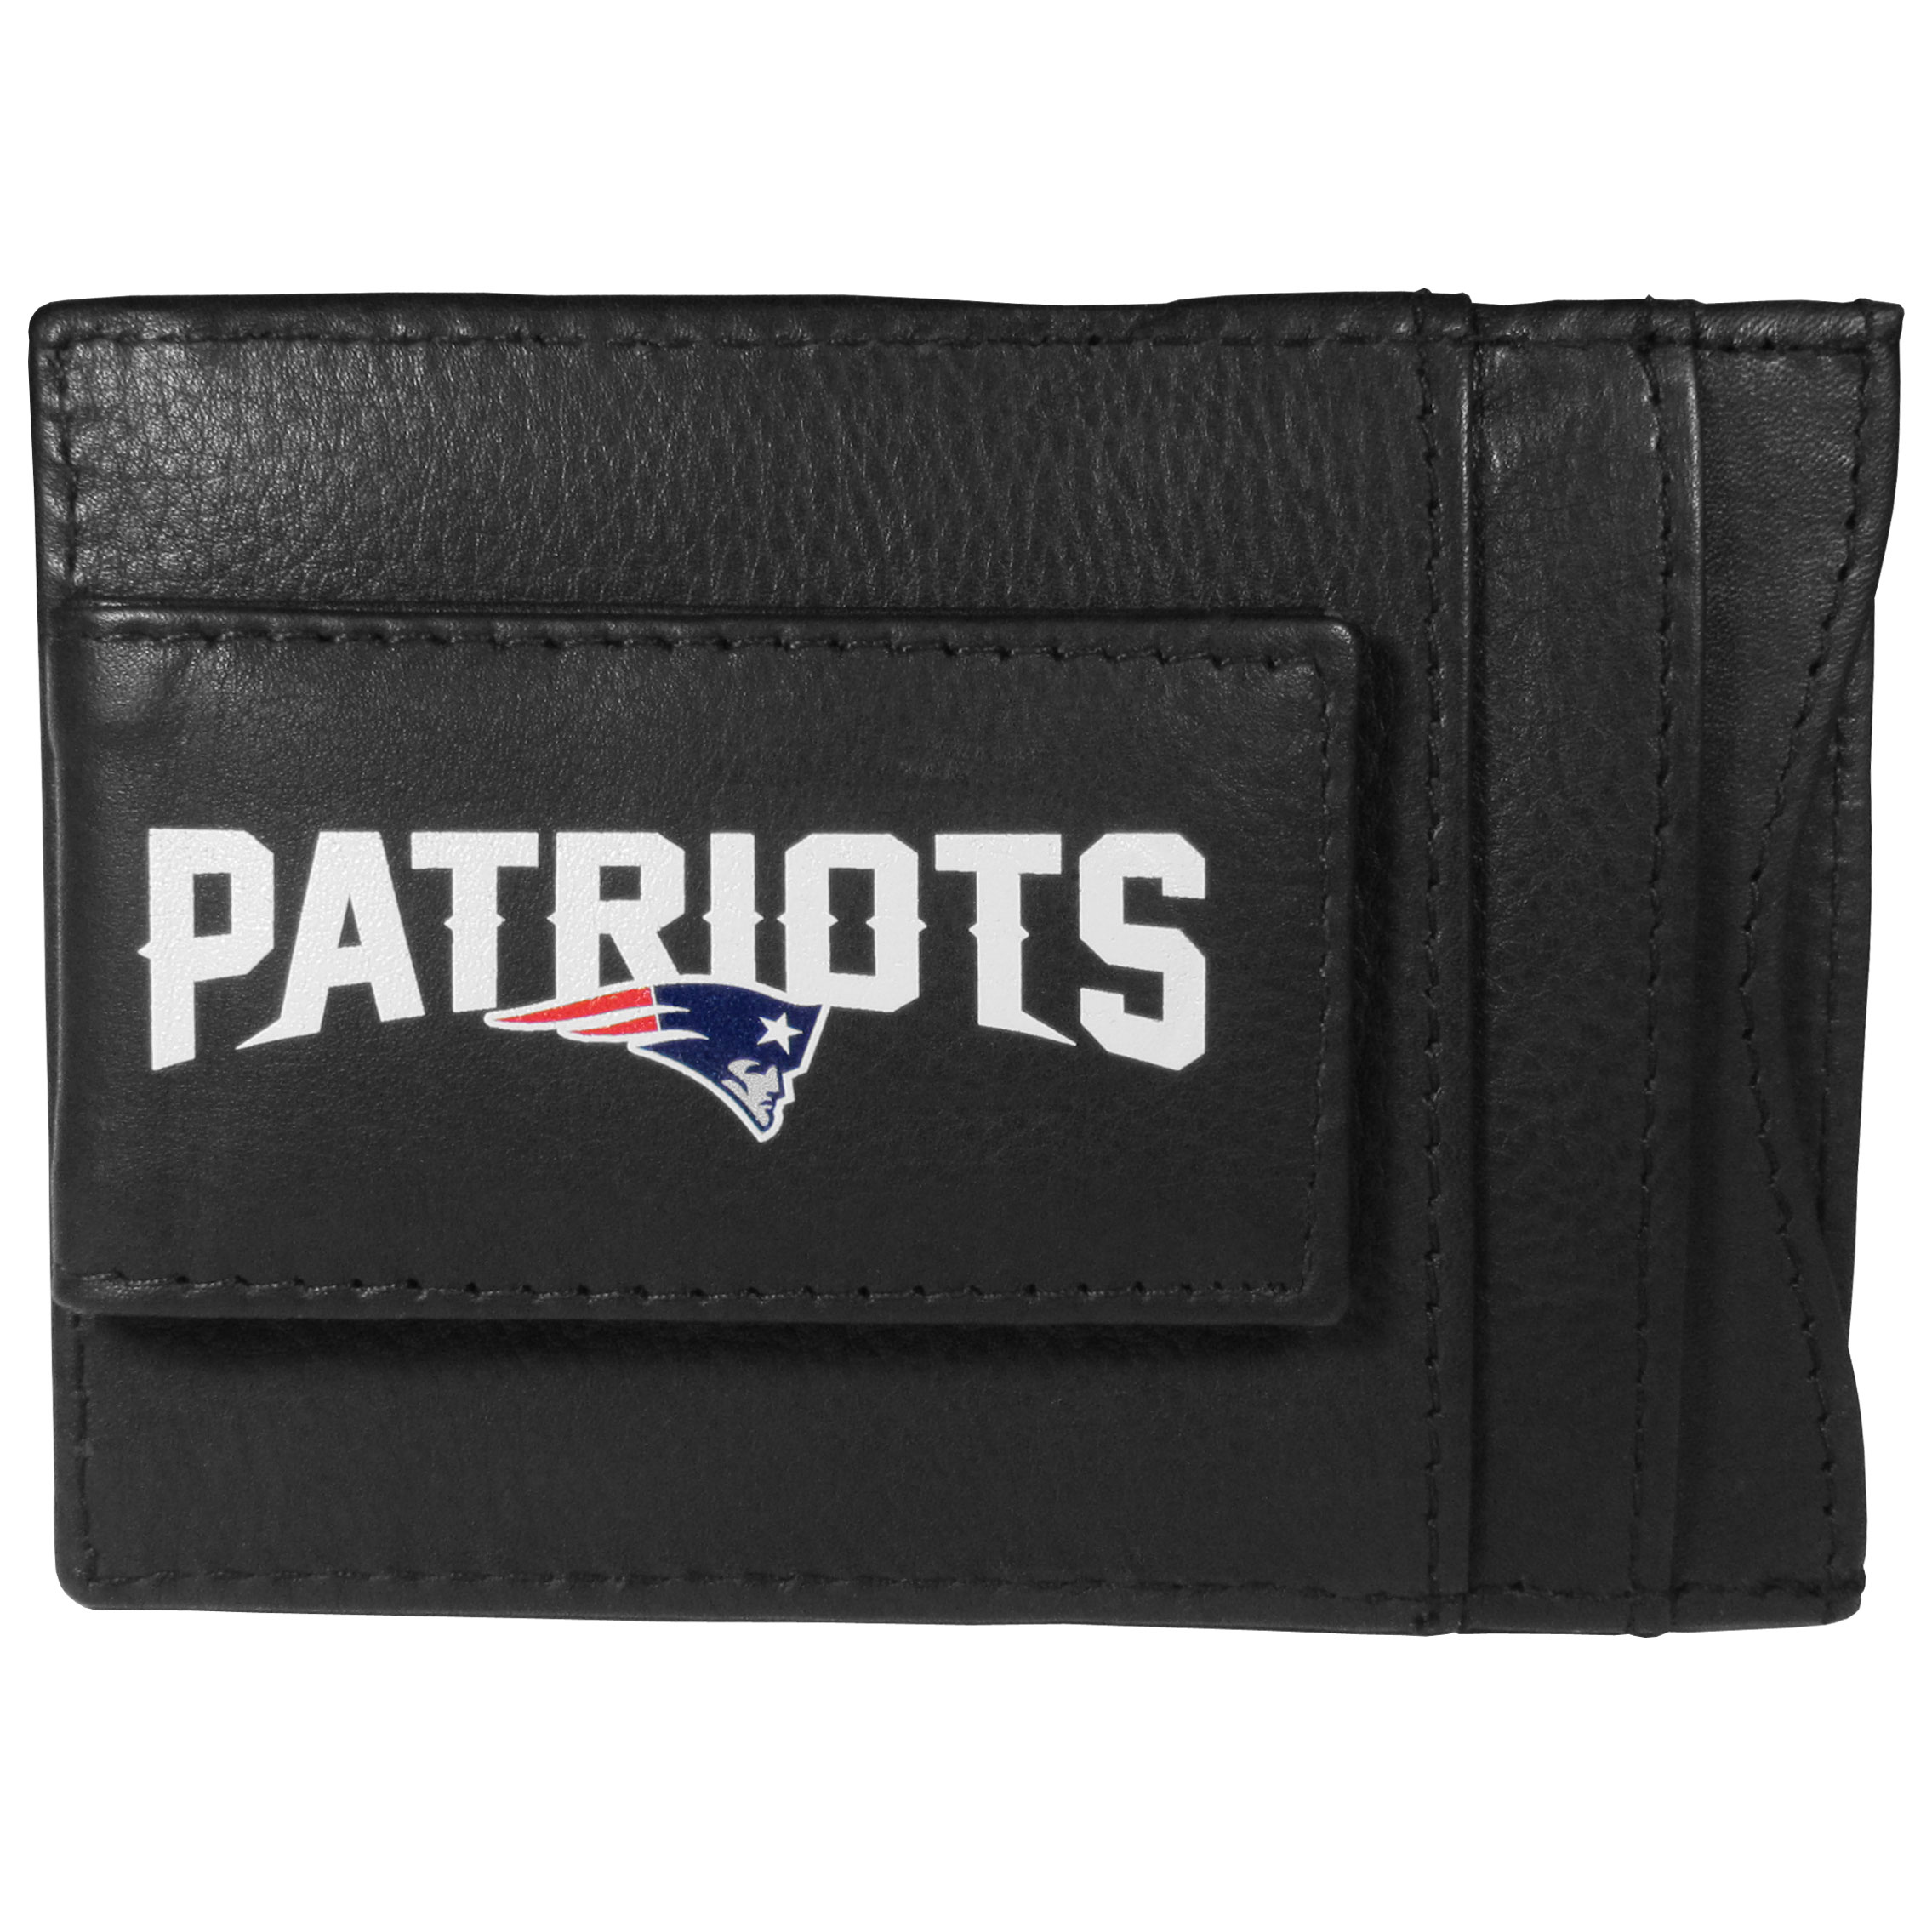 New England Patriots Logo Leather Cash and Cardholder - This super slim leather wallet lets you have all the benefits of a money clip while keeping the organization of a wallet. On one side of this front pocket wallet there is a strong, magnetic money clip to keep your cash easily accessible and the?New England Patriots team logo on the front. The versatile men's accessory is a perfect addition to your fan apparel.